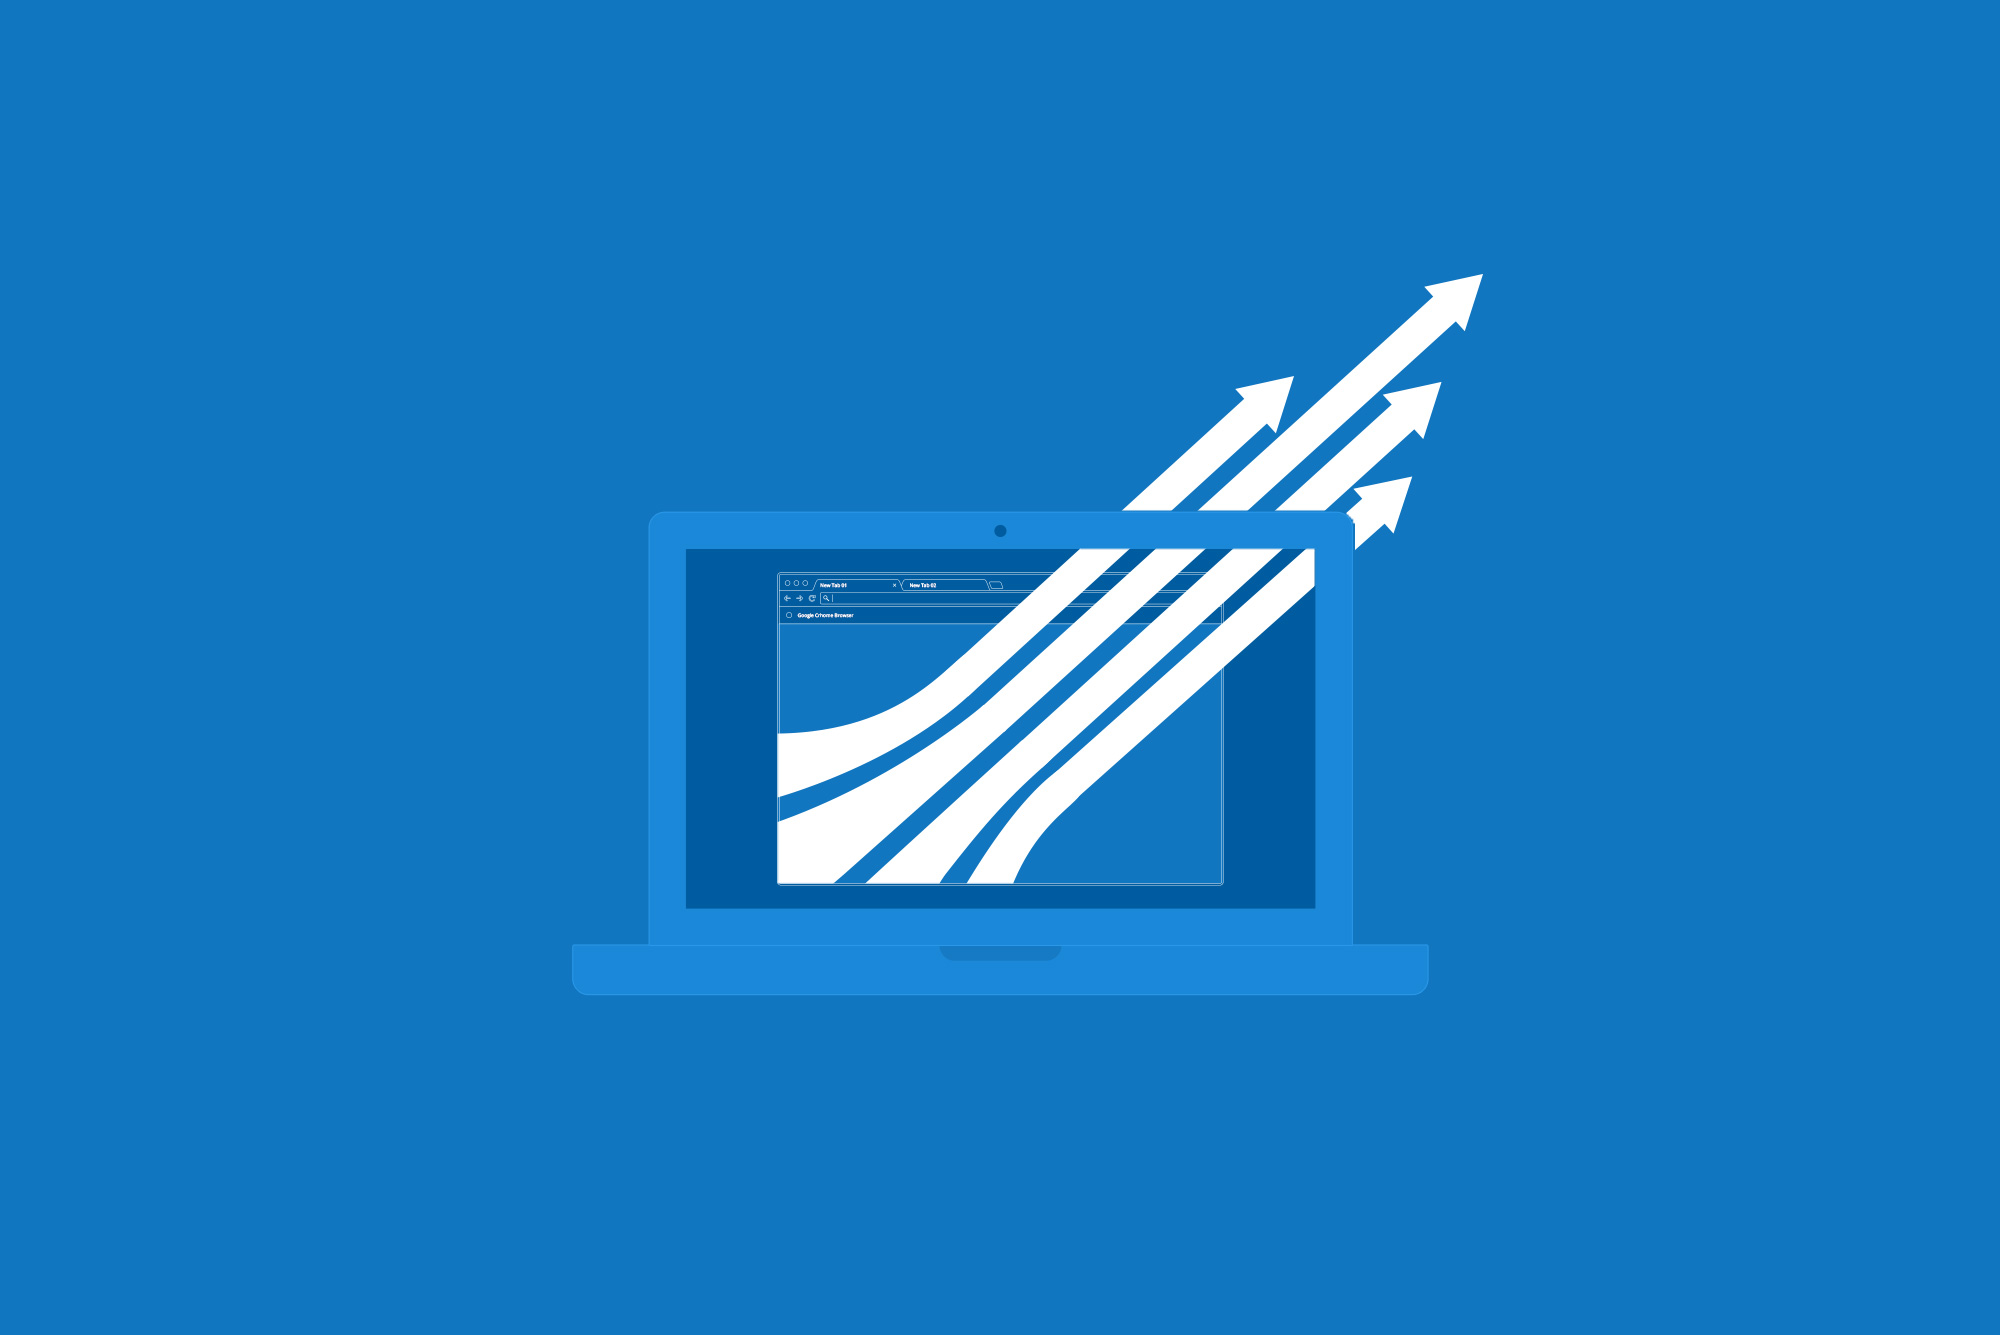 Laptop with white arrows on blue background - Increasing your brand profile